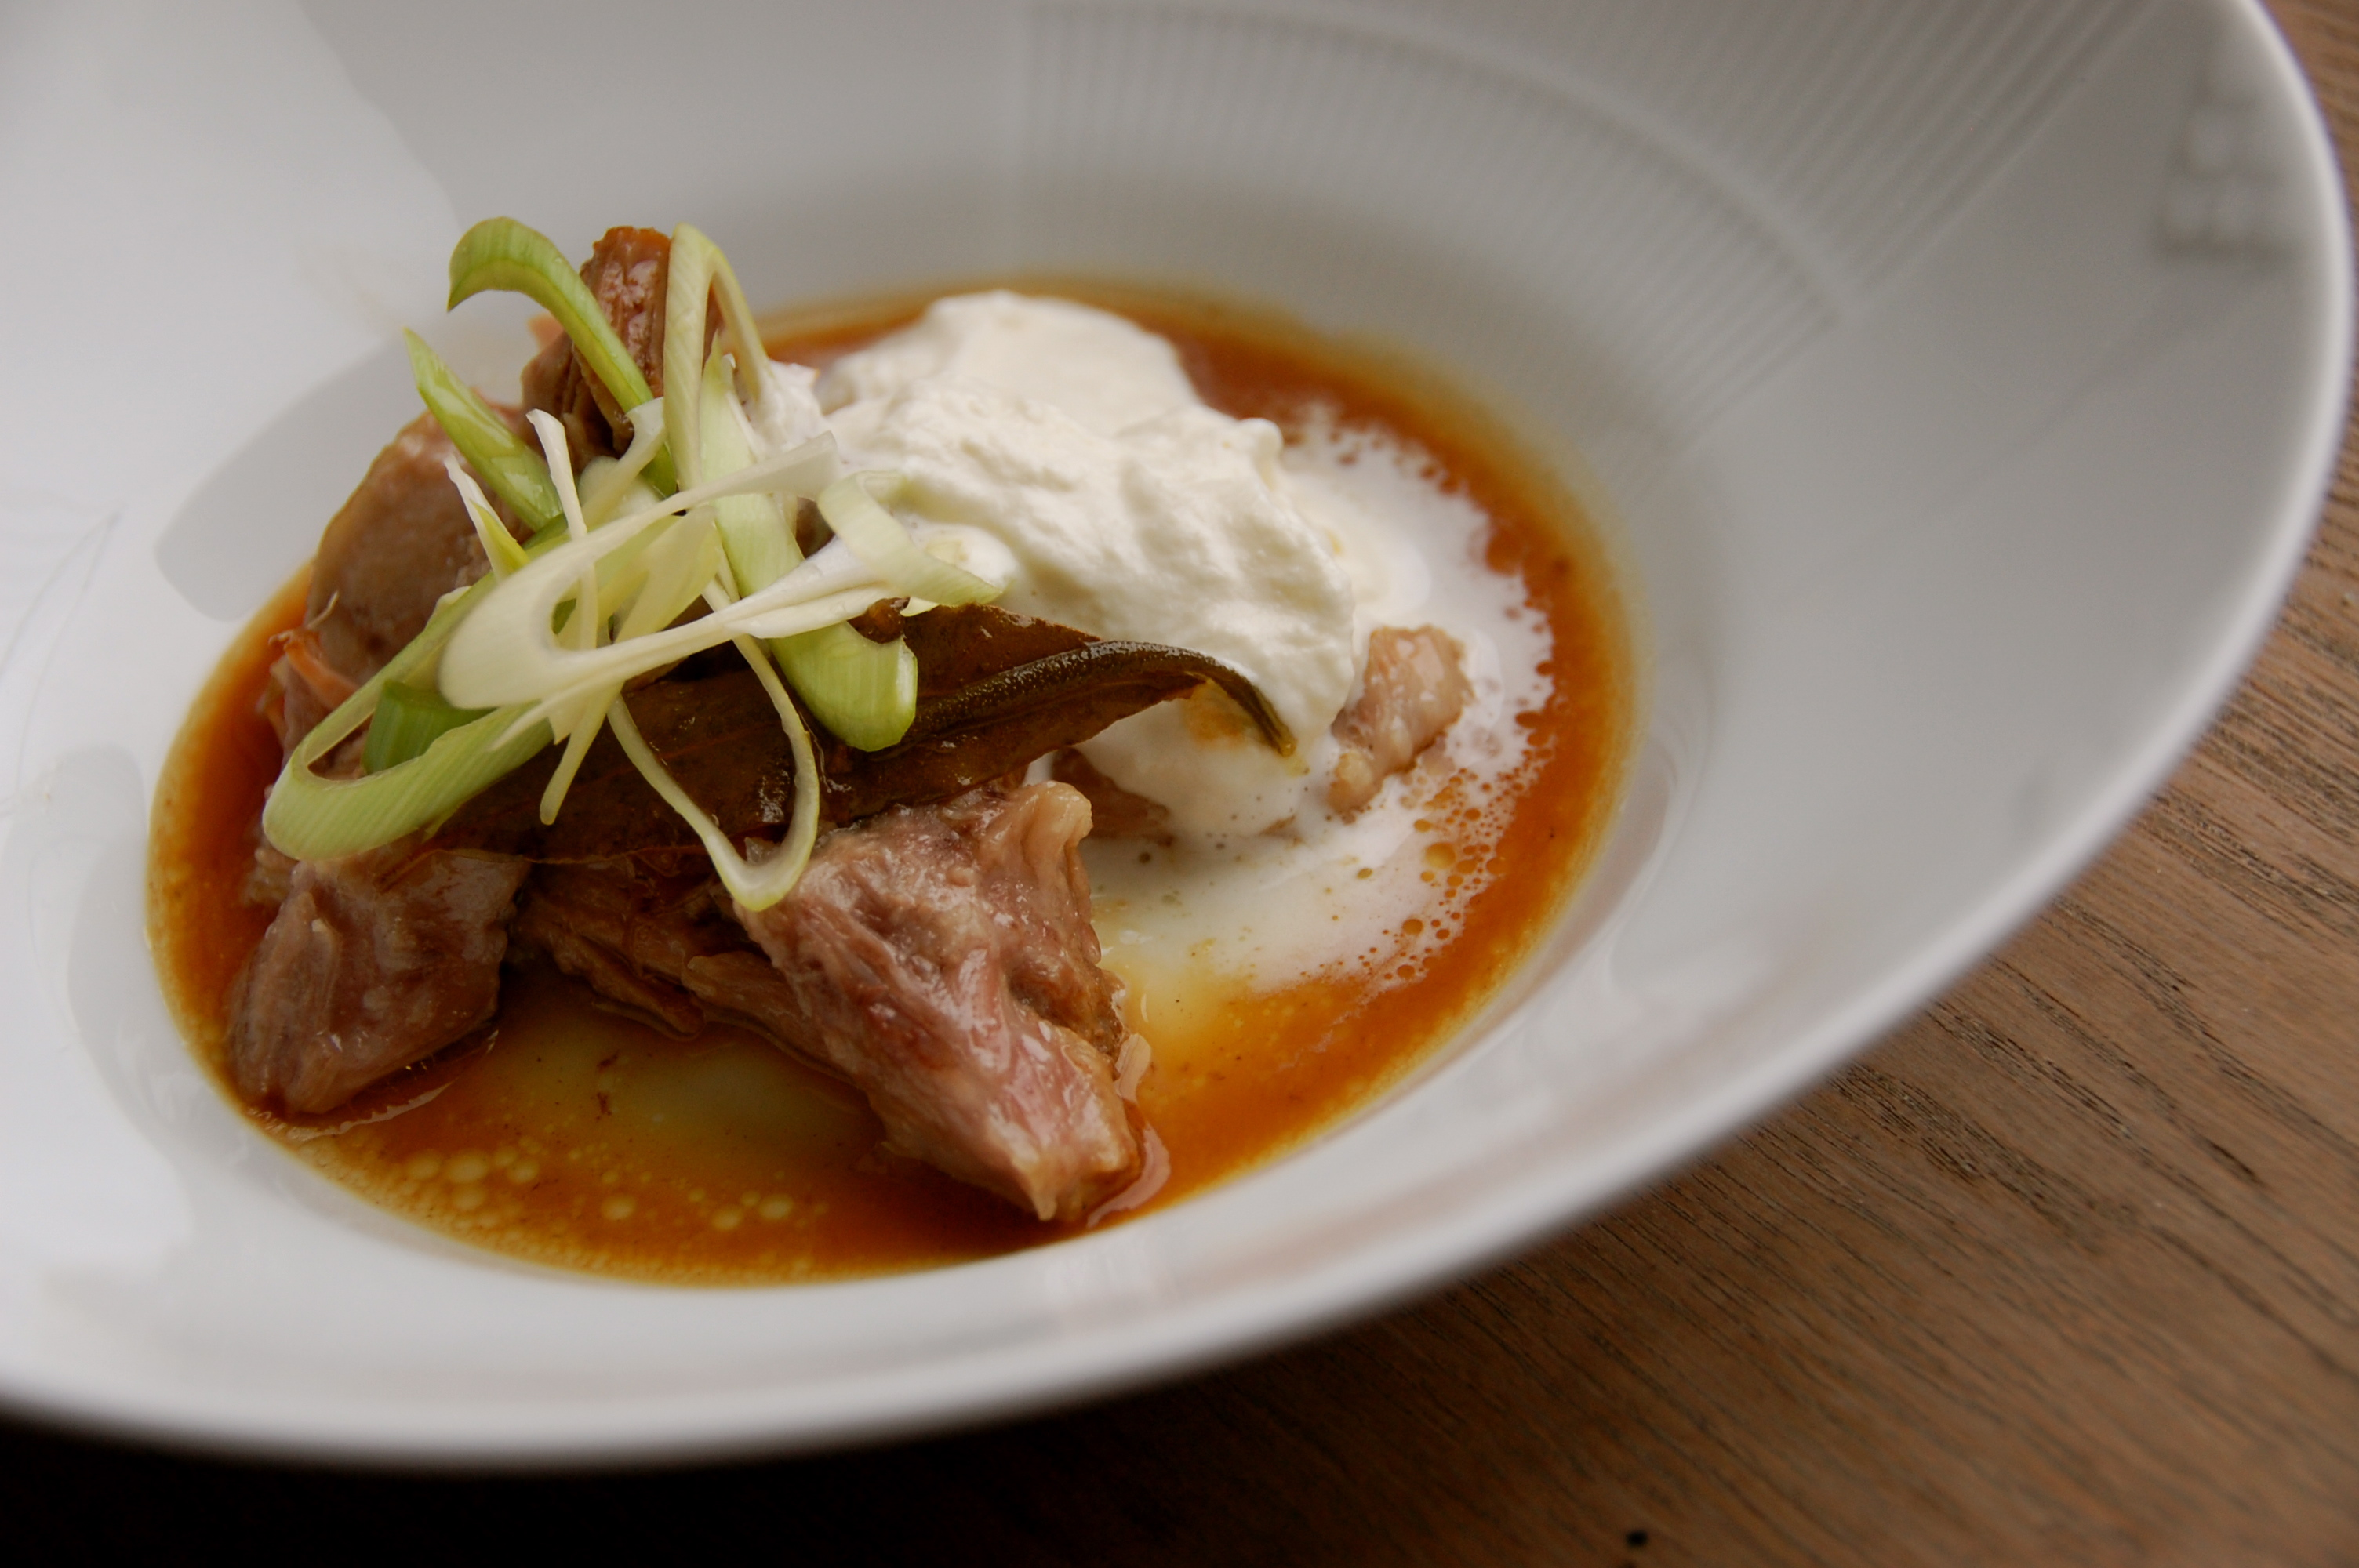 Cider-braised pork with pickled leeks and horseradish